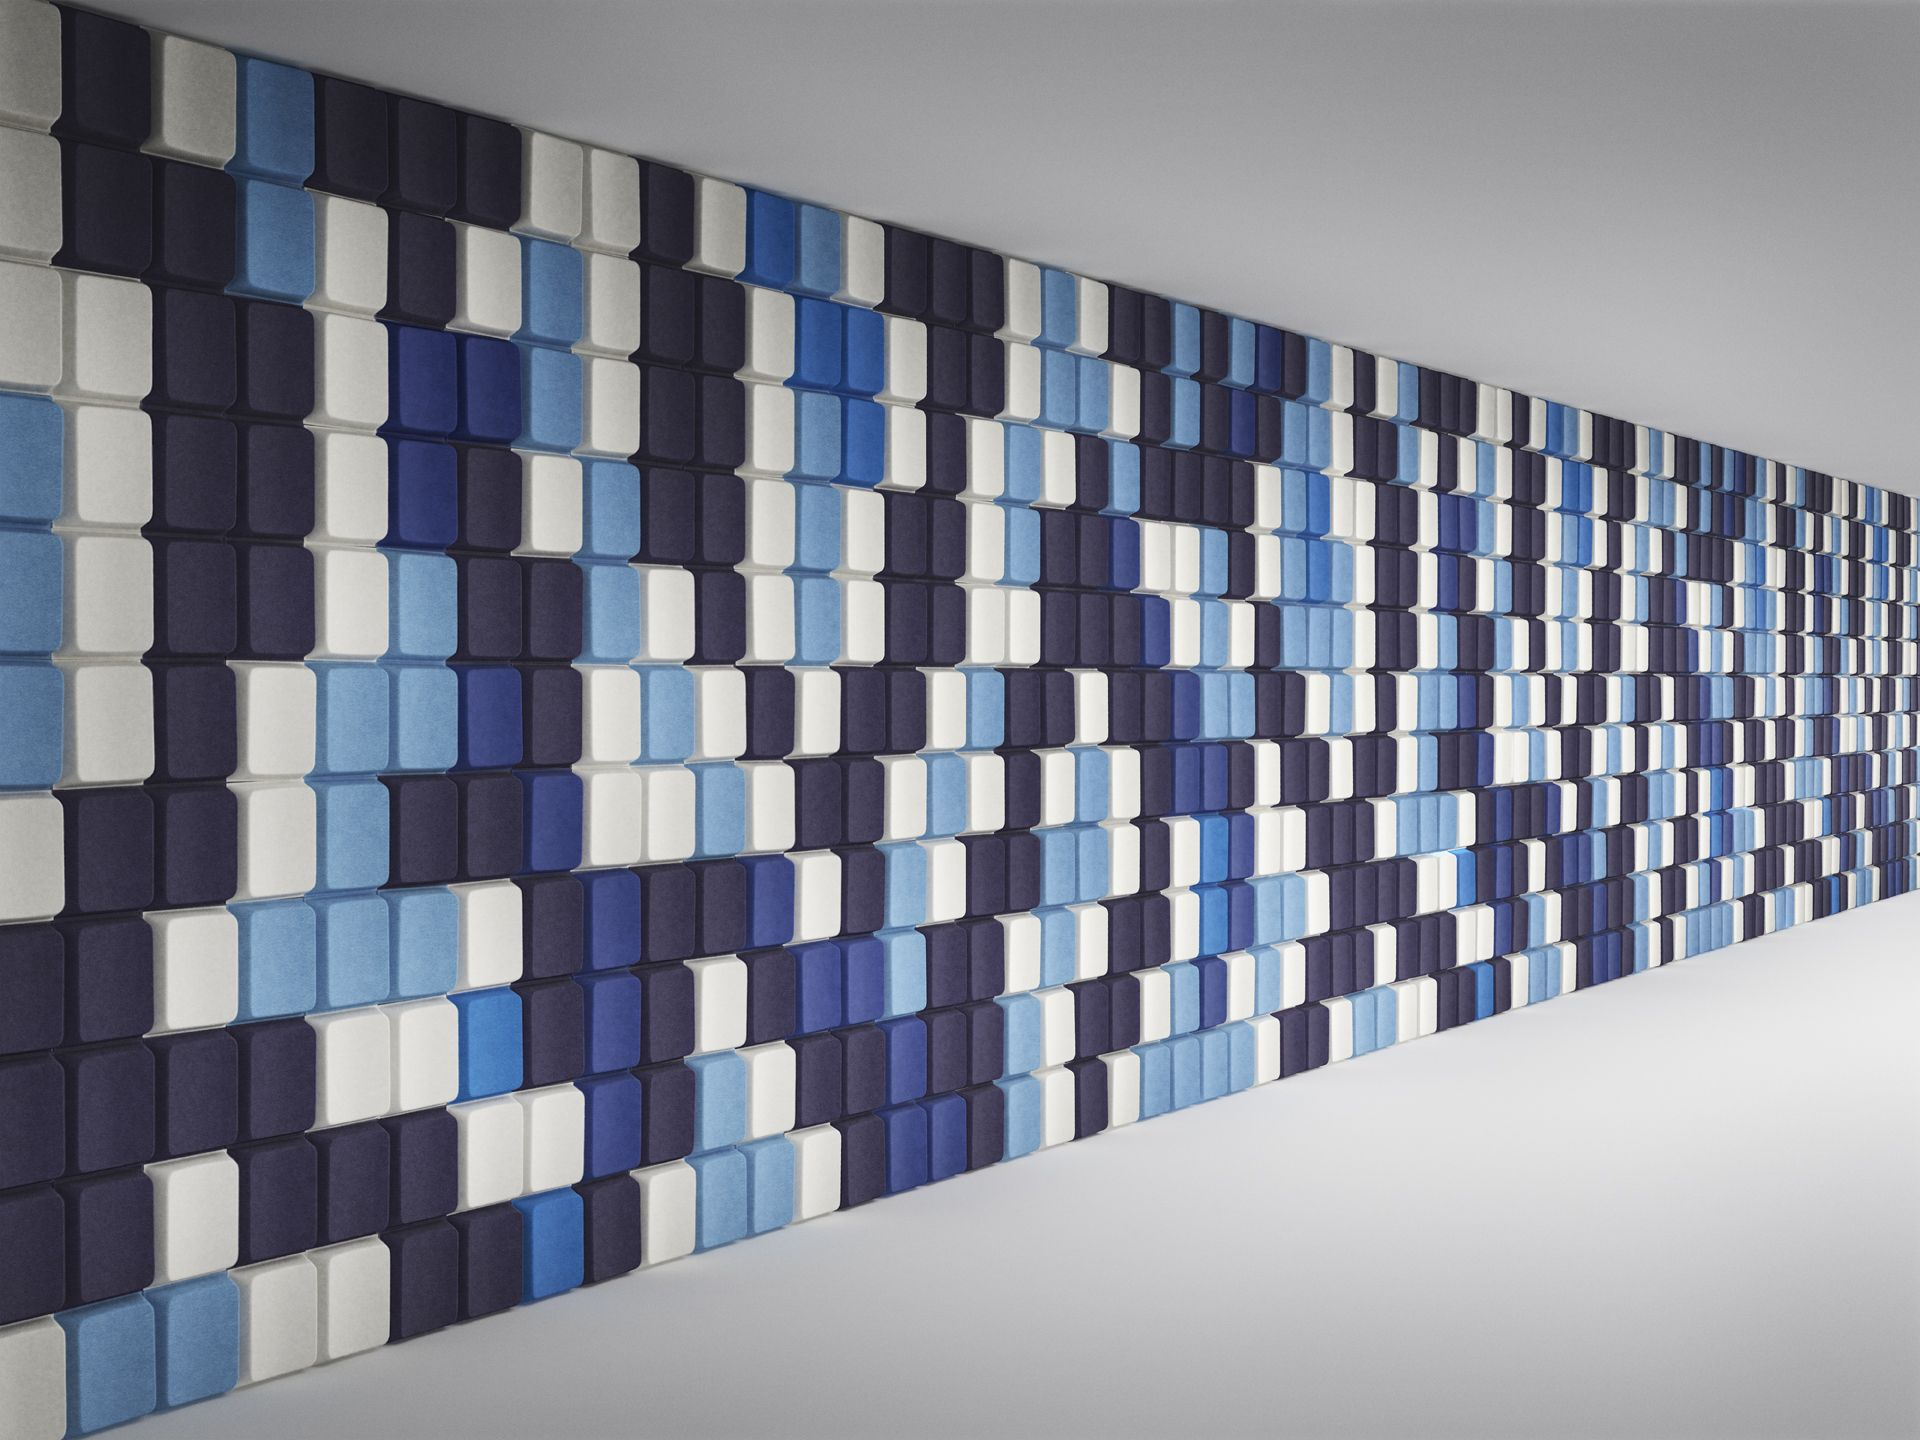 Pix Acoustic Panels - Now available @ Form. | | tile | Flooring ...